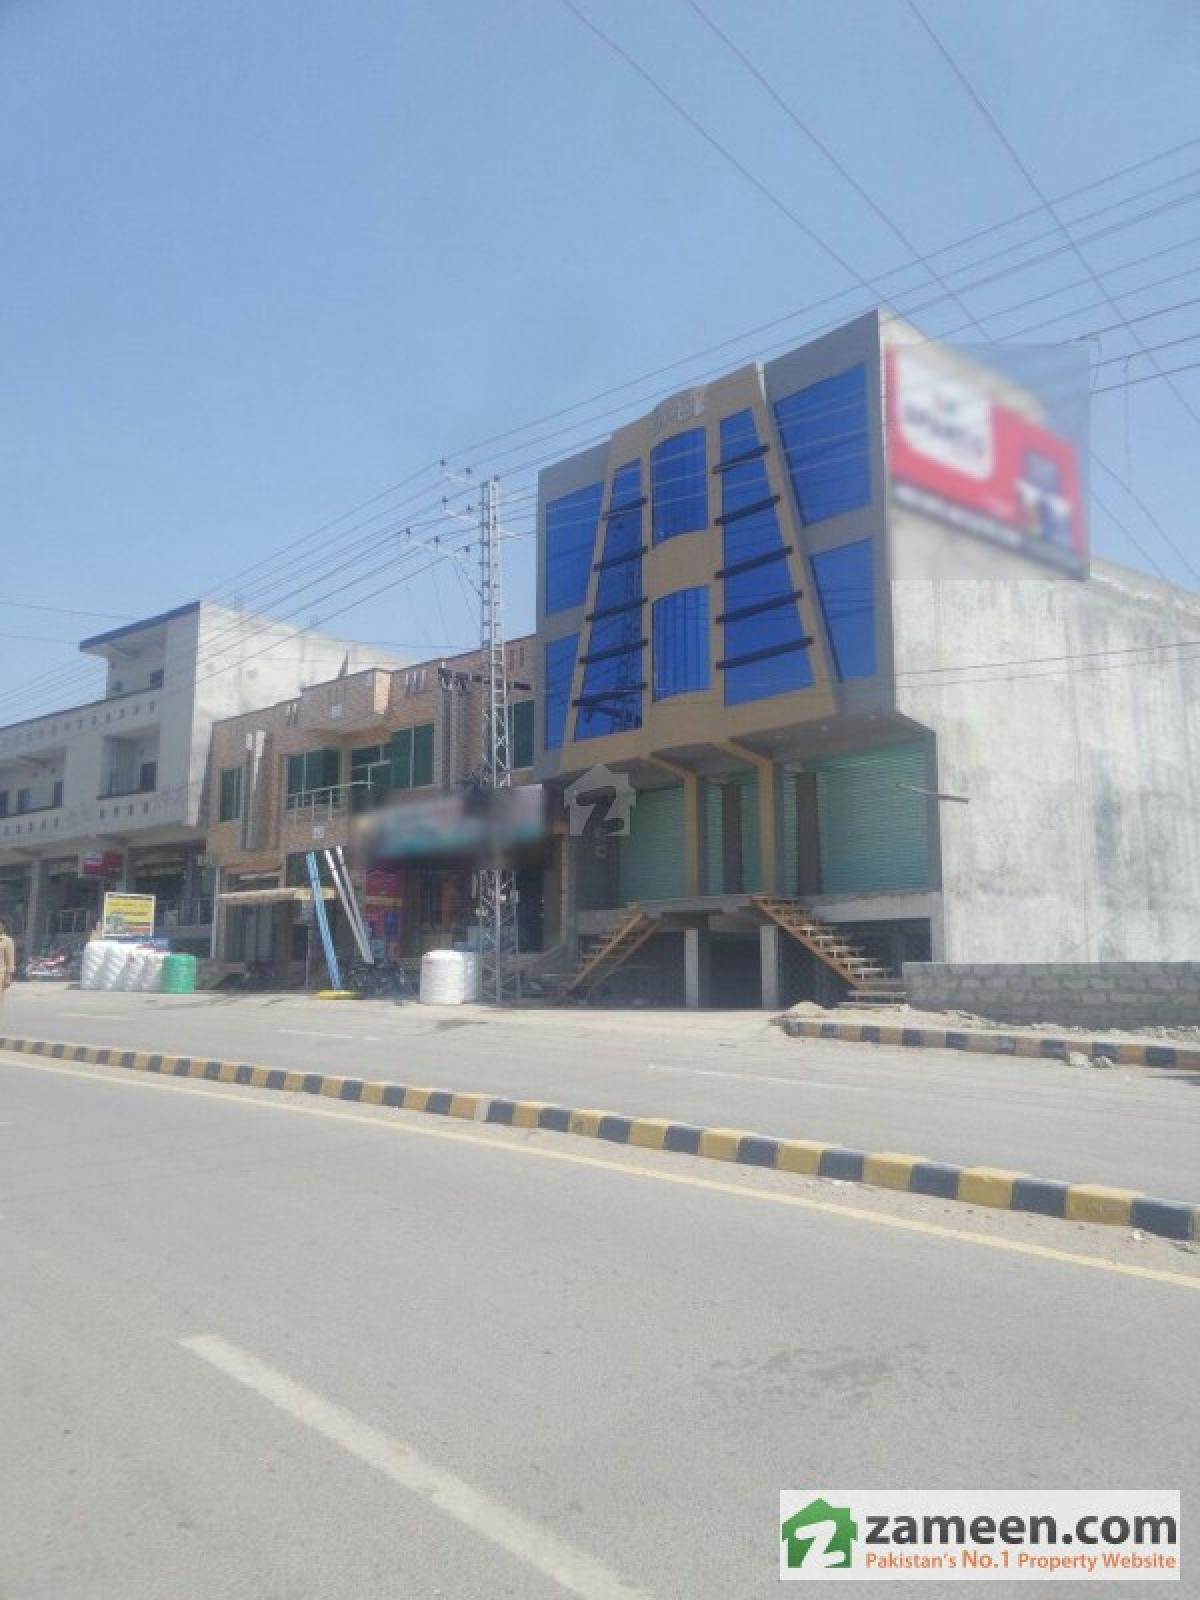 Property listed For Sale in Rawalpindi, Pakistan